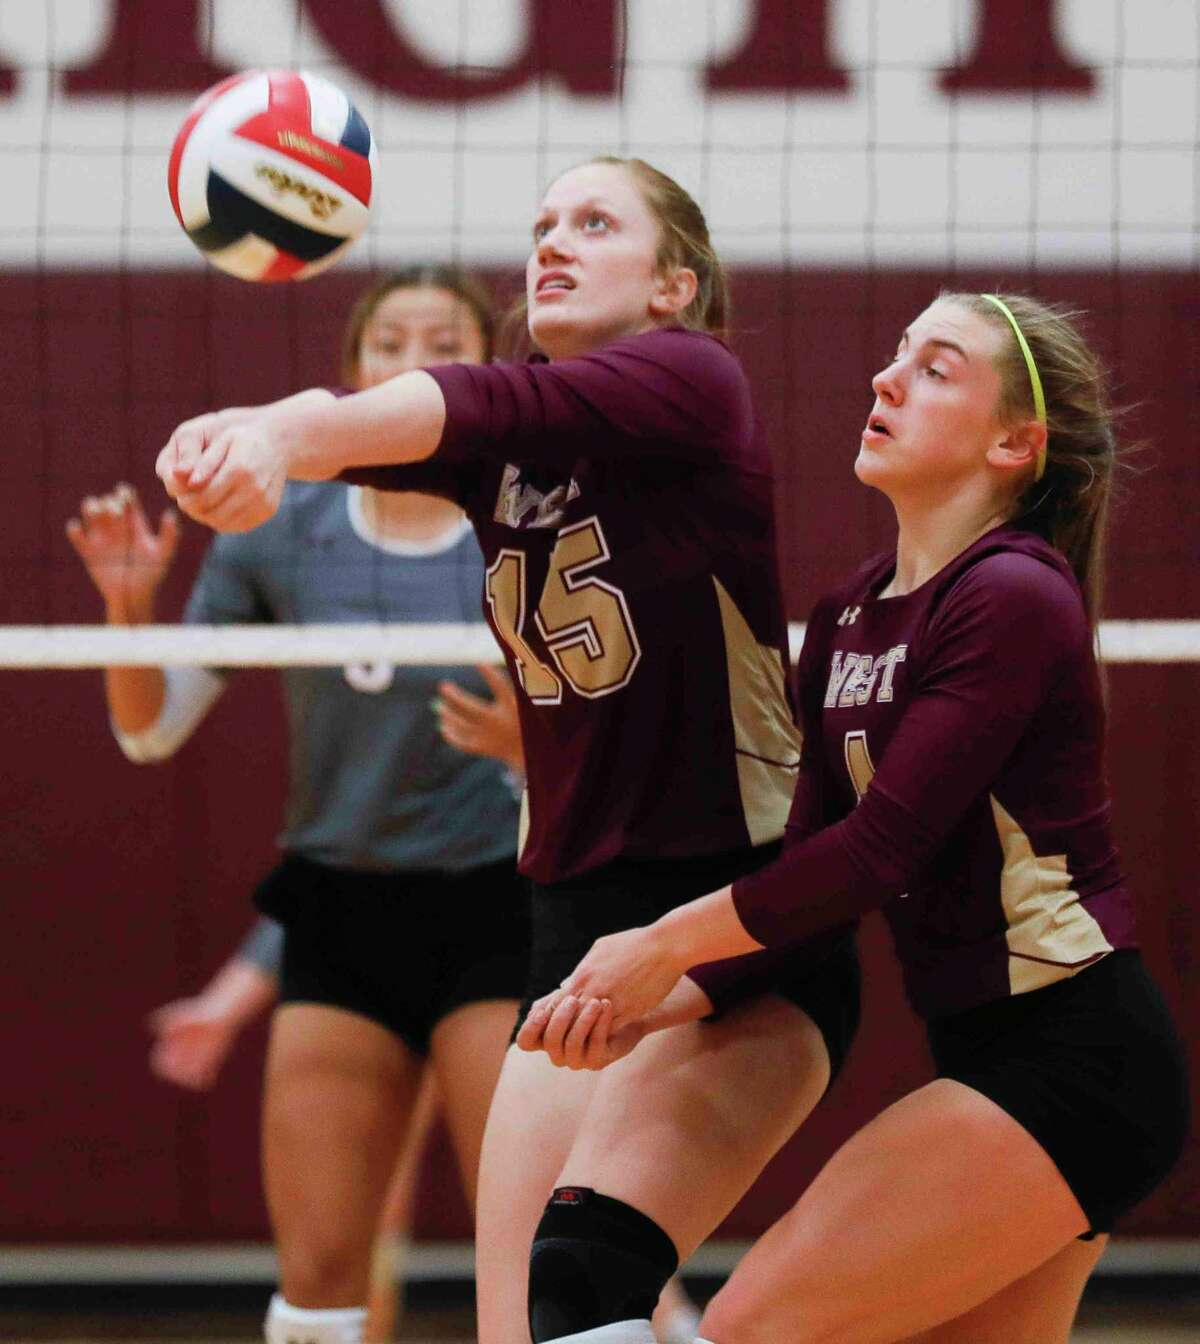 Magnolia West outside hitter Evyn Snook (15) collides with setter Bethany May (4) while returning the ball during the first set of a District 19-5A high school volleyball match at Magnolia High School, Tuesday, Oct. 6, 2020, in Magnolia.